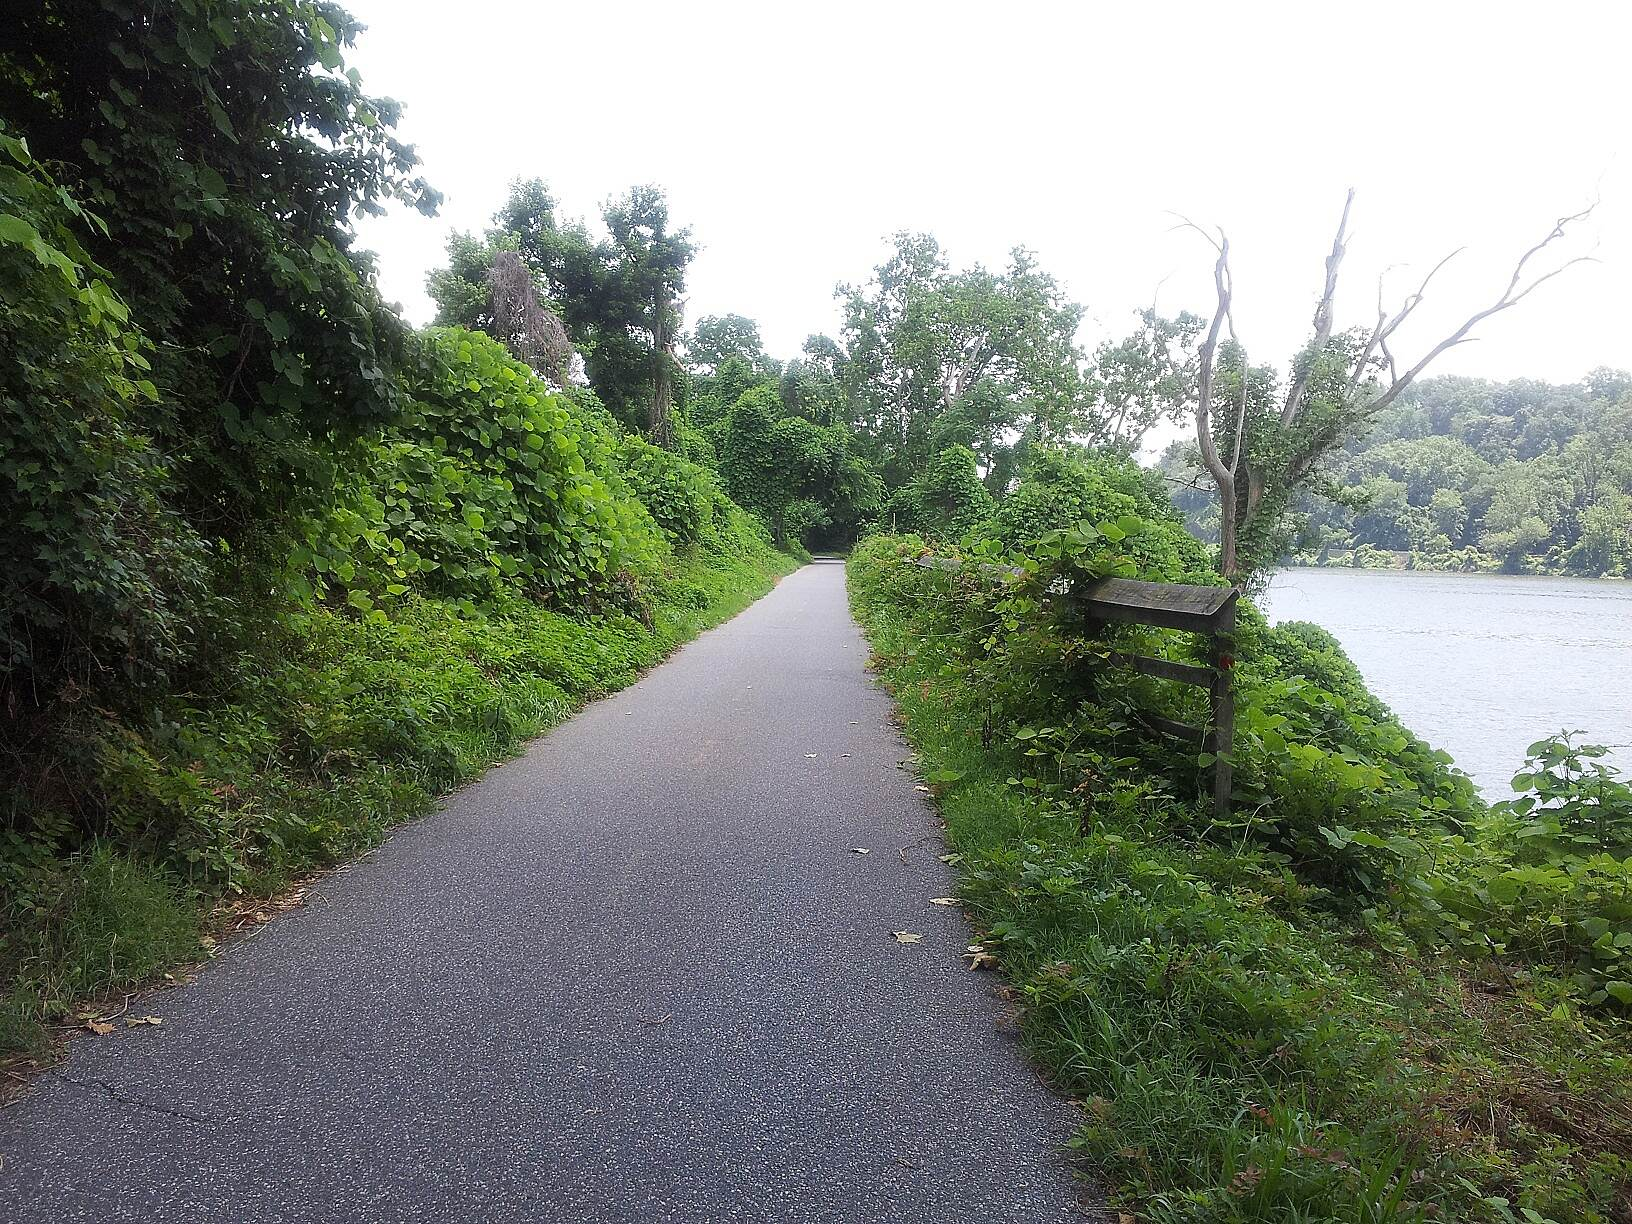 Capital Crescent Trail View of Potomac off Crescent This is just one of the views of the Potomac from the crescent trail